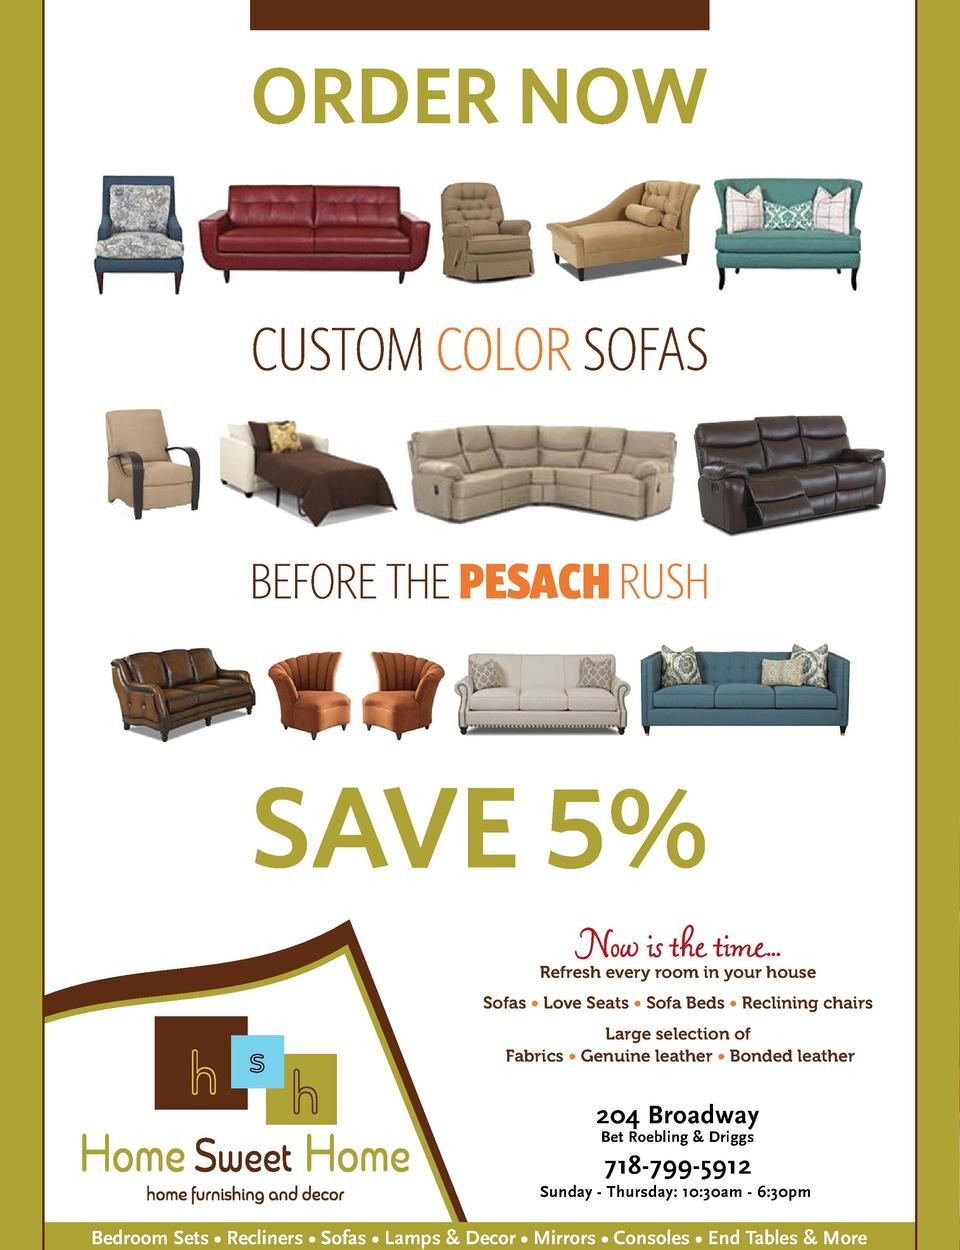 ORDER NOW  Sharpen Your Appetite  with Chanie Apfelbaum  CUSTOM COLOR SOFAS  Purim has got to be the most universally love...